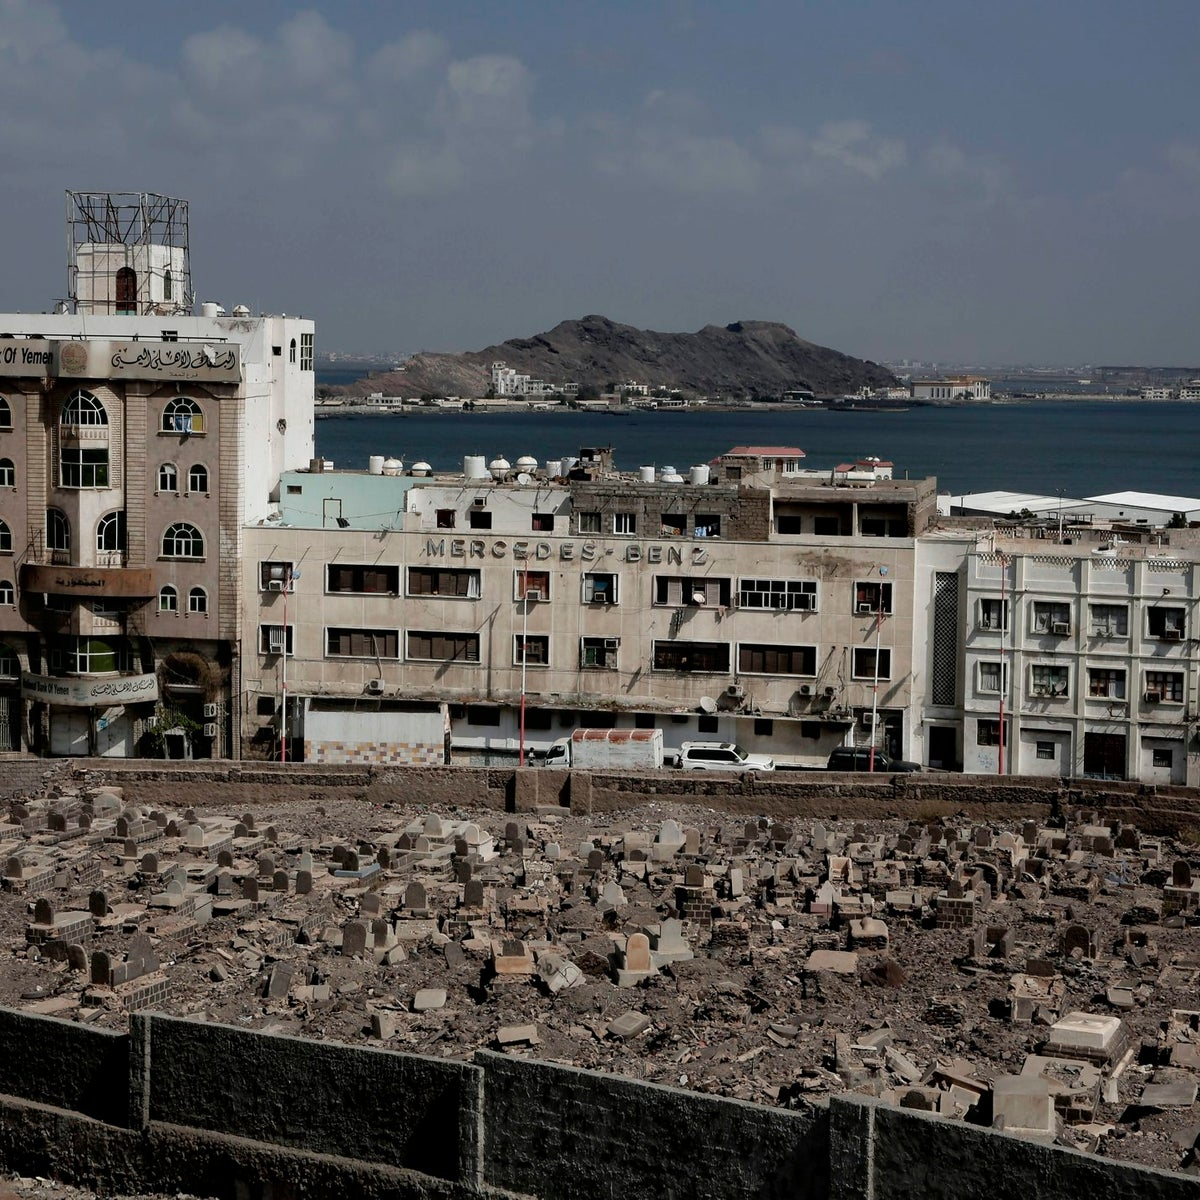 This Feb. 17, 2018, photo shows the Mercedes Benz building damaged in Aden, Yemen. Once a peg in a thriving commercial center that sprang up under colonial rule, the dealership sits empty and pockmarked with bullet holes. Its damaged sign now stands over bay windows boarded up by people sheltering inside. With the war still raging, nothing is being rebuilt.